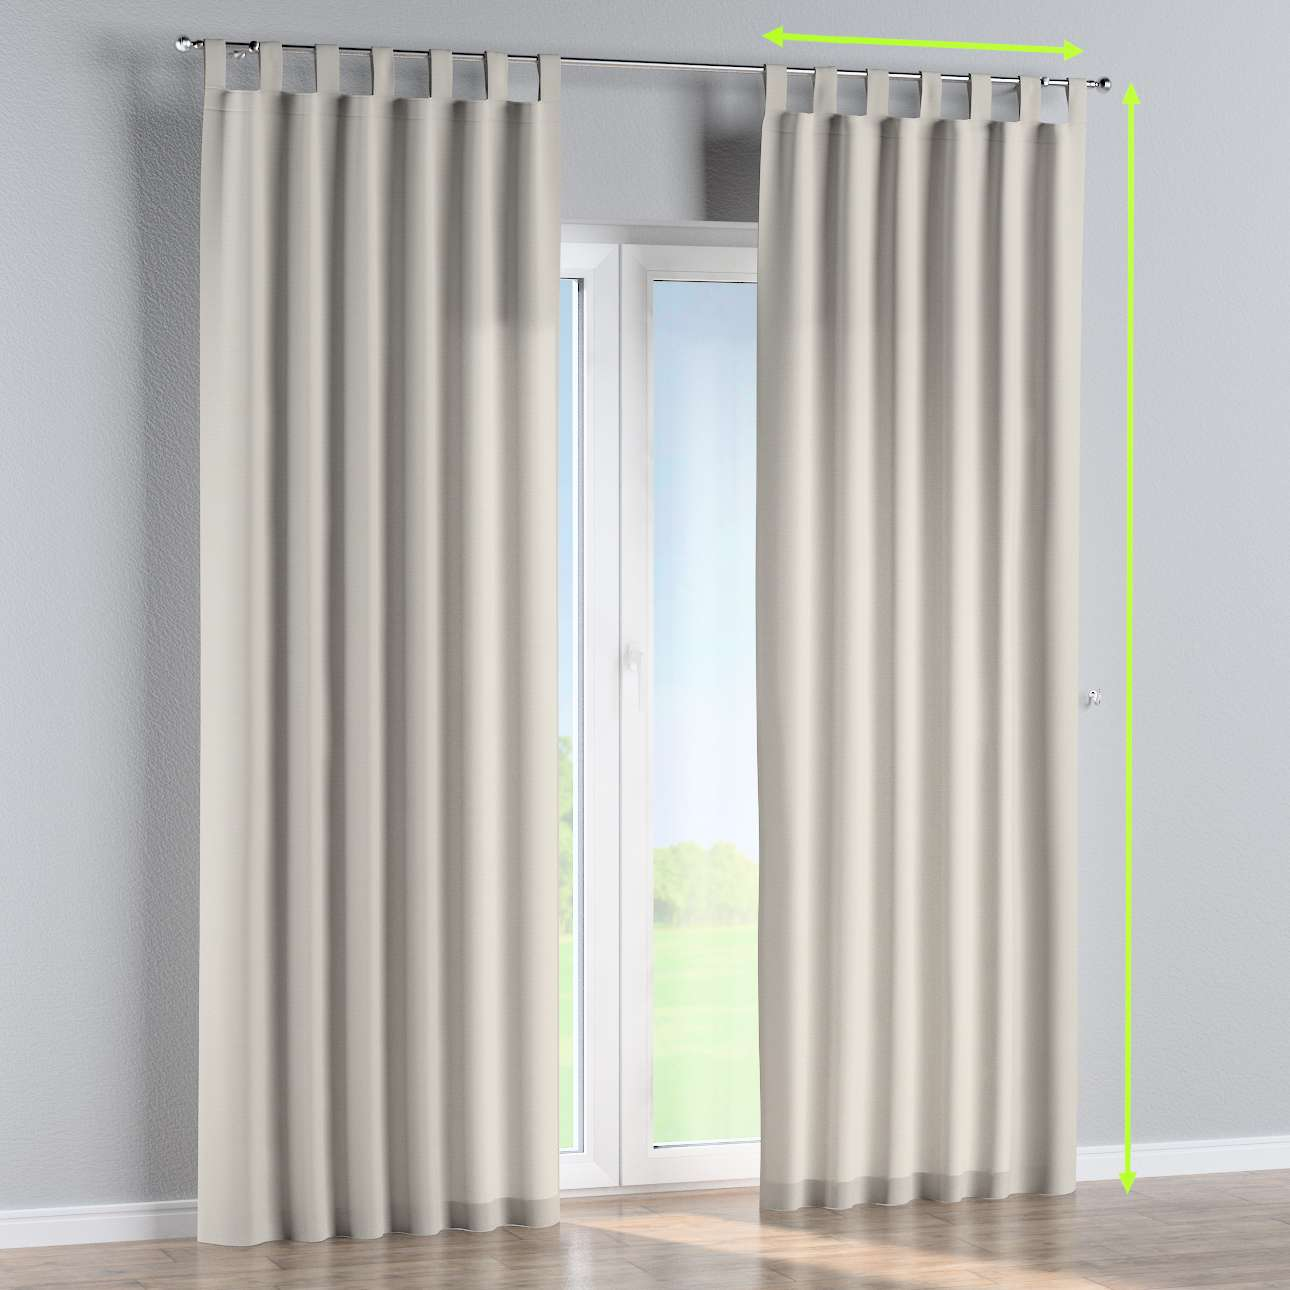 Tab top curtains in collection Cotton Panama, fabric: 702-31